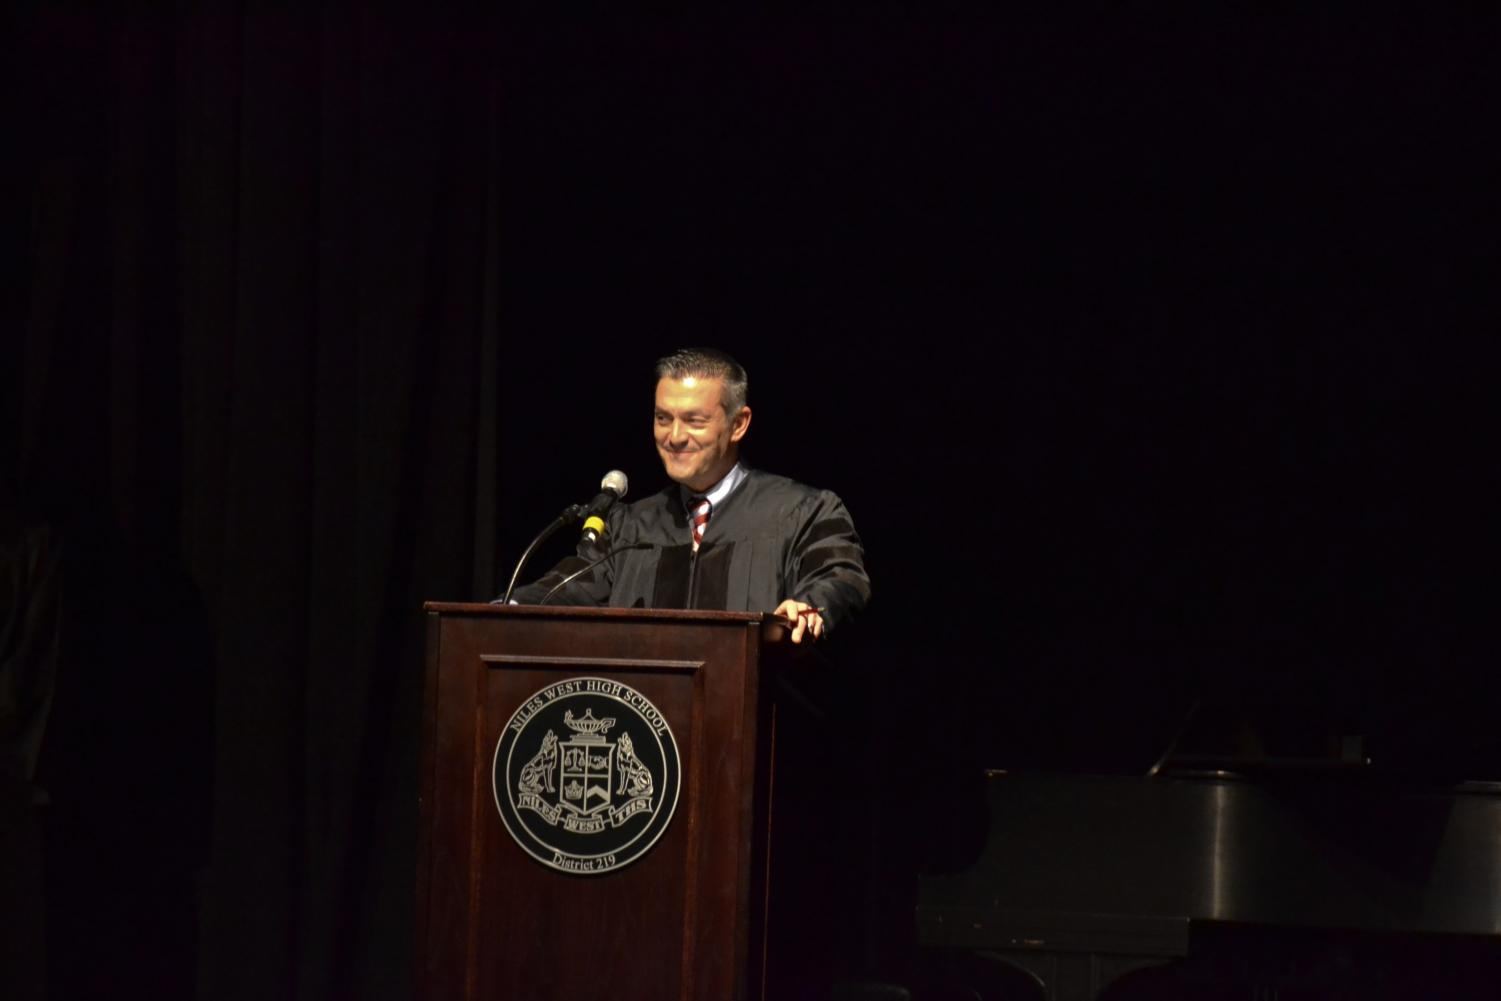 Principal Dr. Jason Ness speaks about leadership during NHS induction.